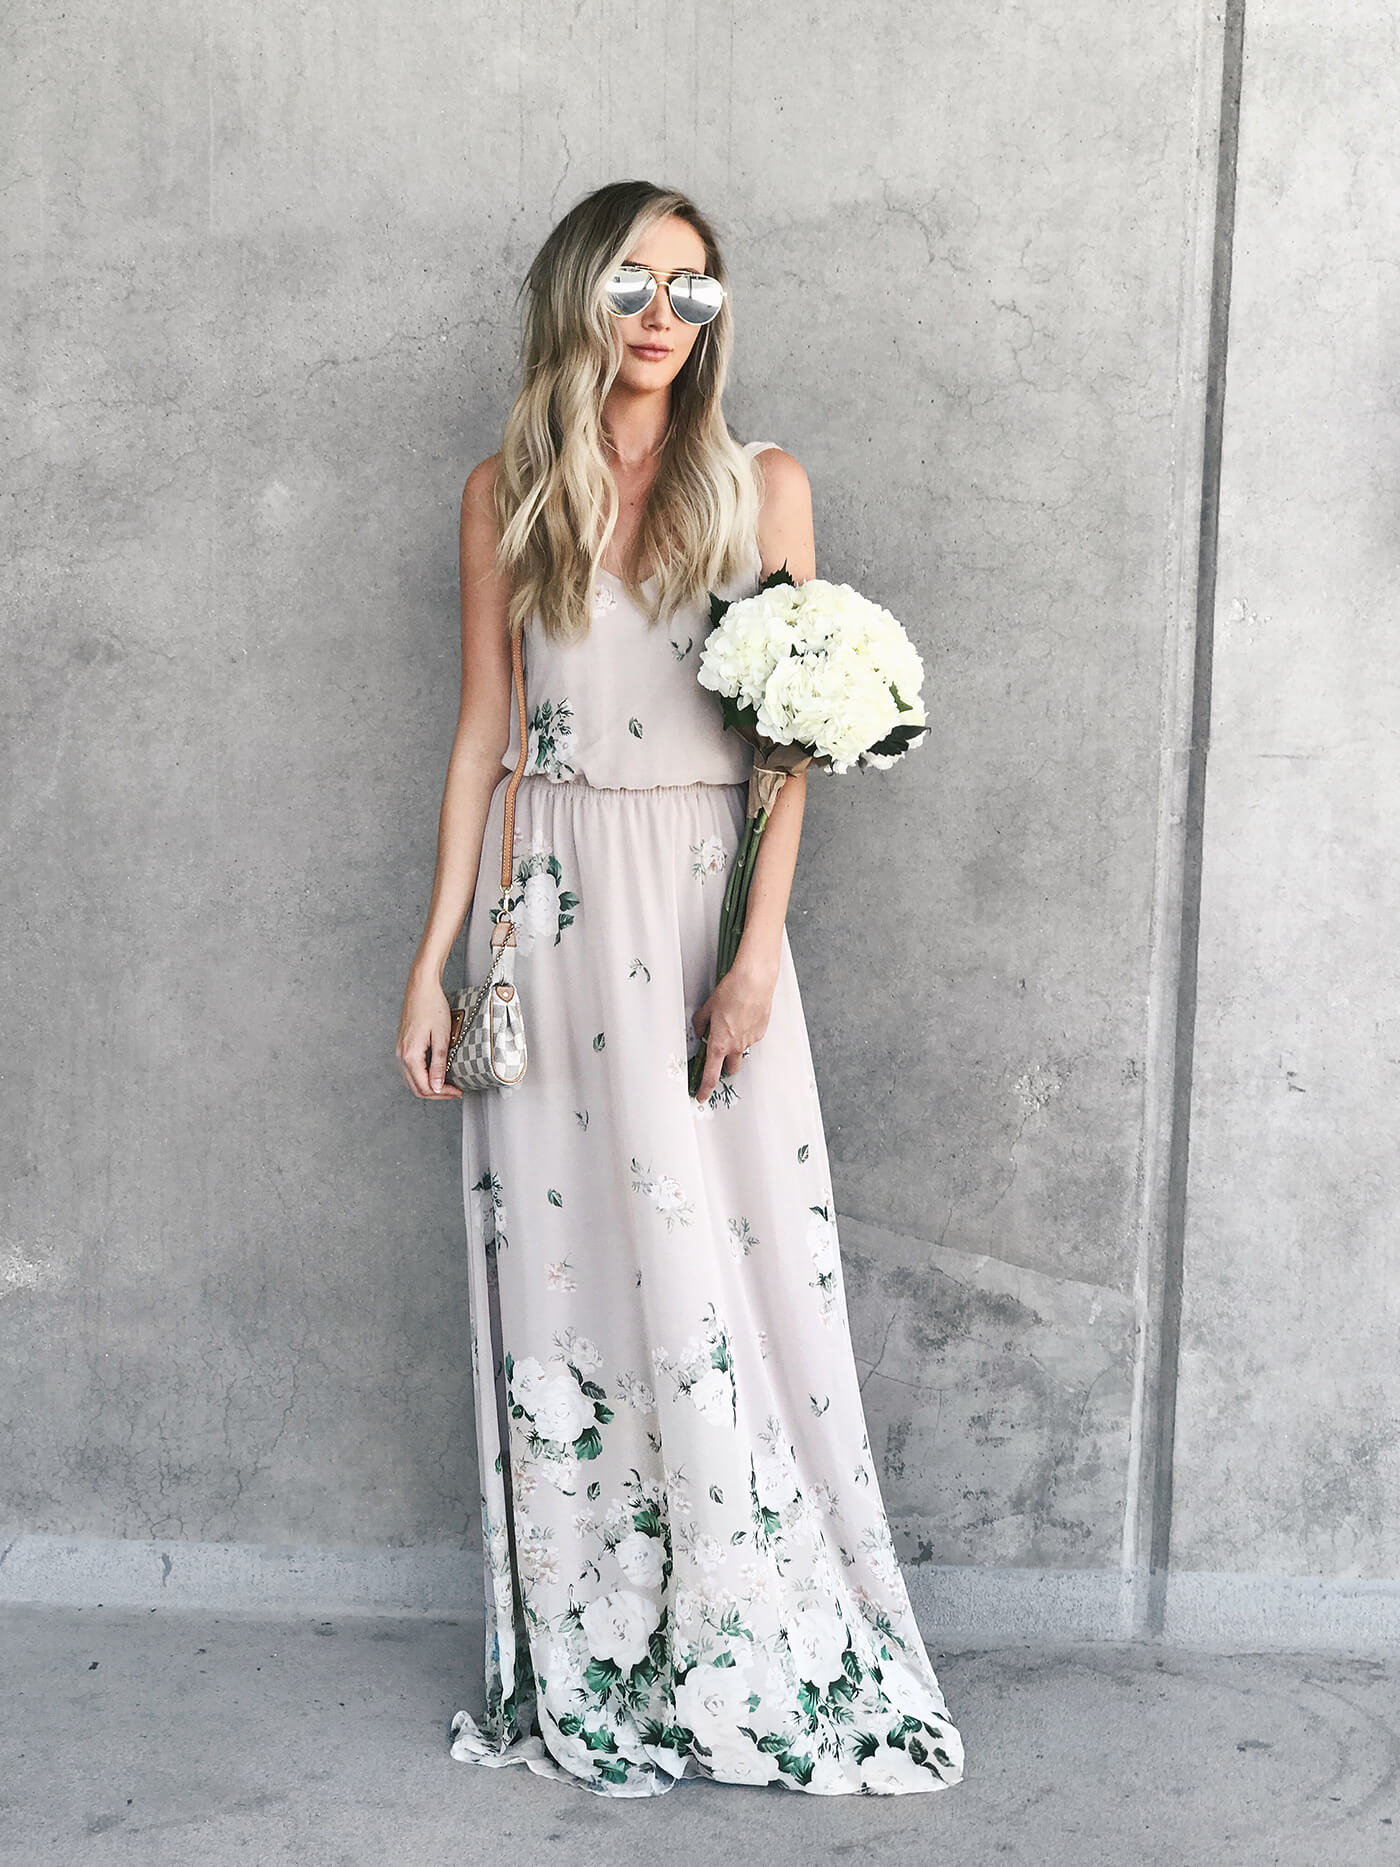 How to choose your bridesmaid dresses carly cristman carly cristman summer bridesmaid dresses bridesmaid dress ideas floral bridesmaid dresses summer ombrellifo Image collections